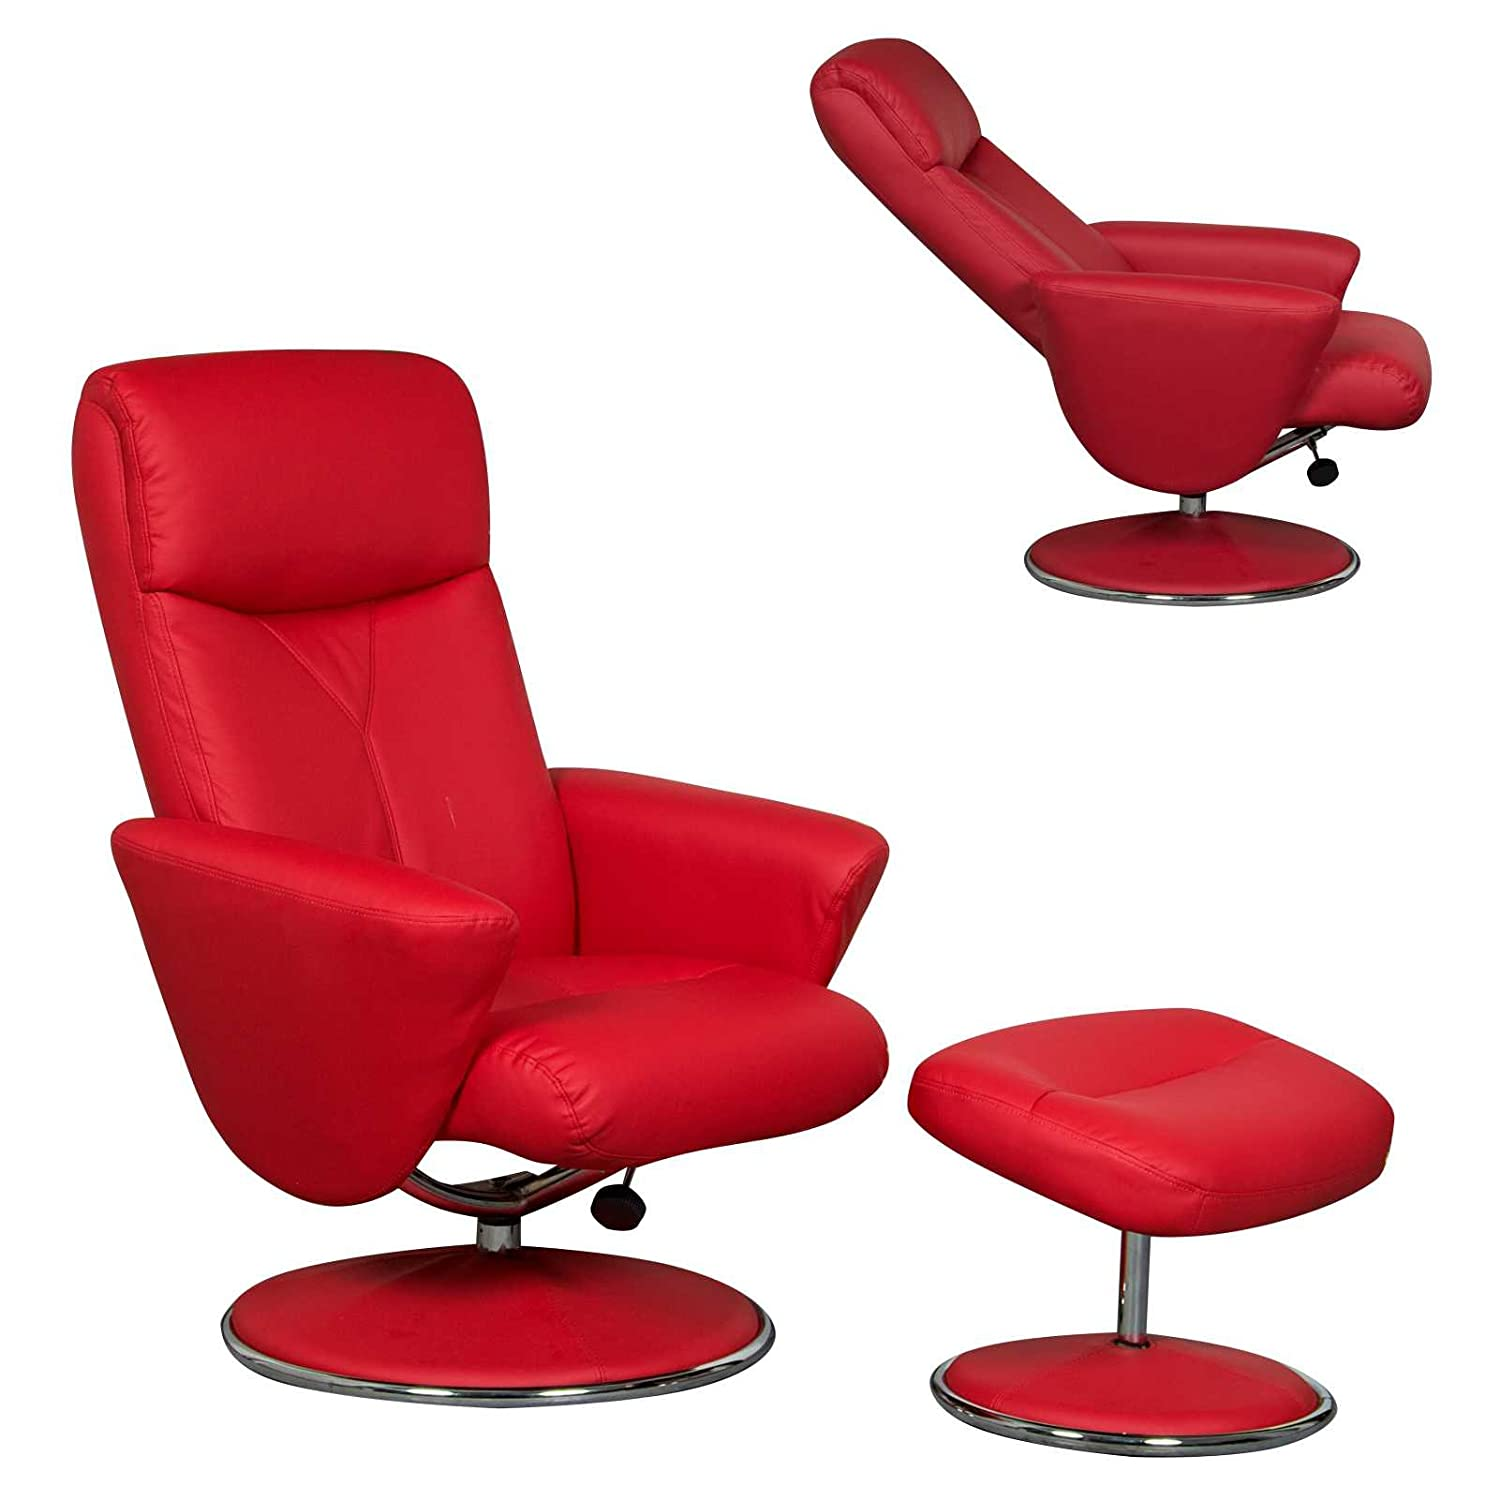 The Alizza Leather Effect Swivel Recliner Relaxer Chair in Red